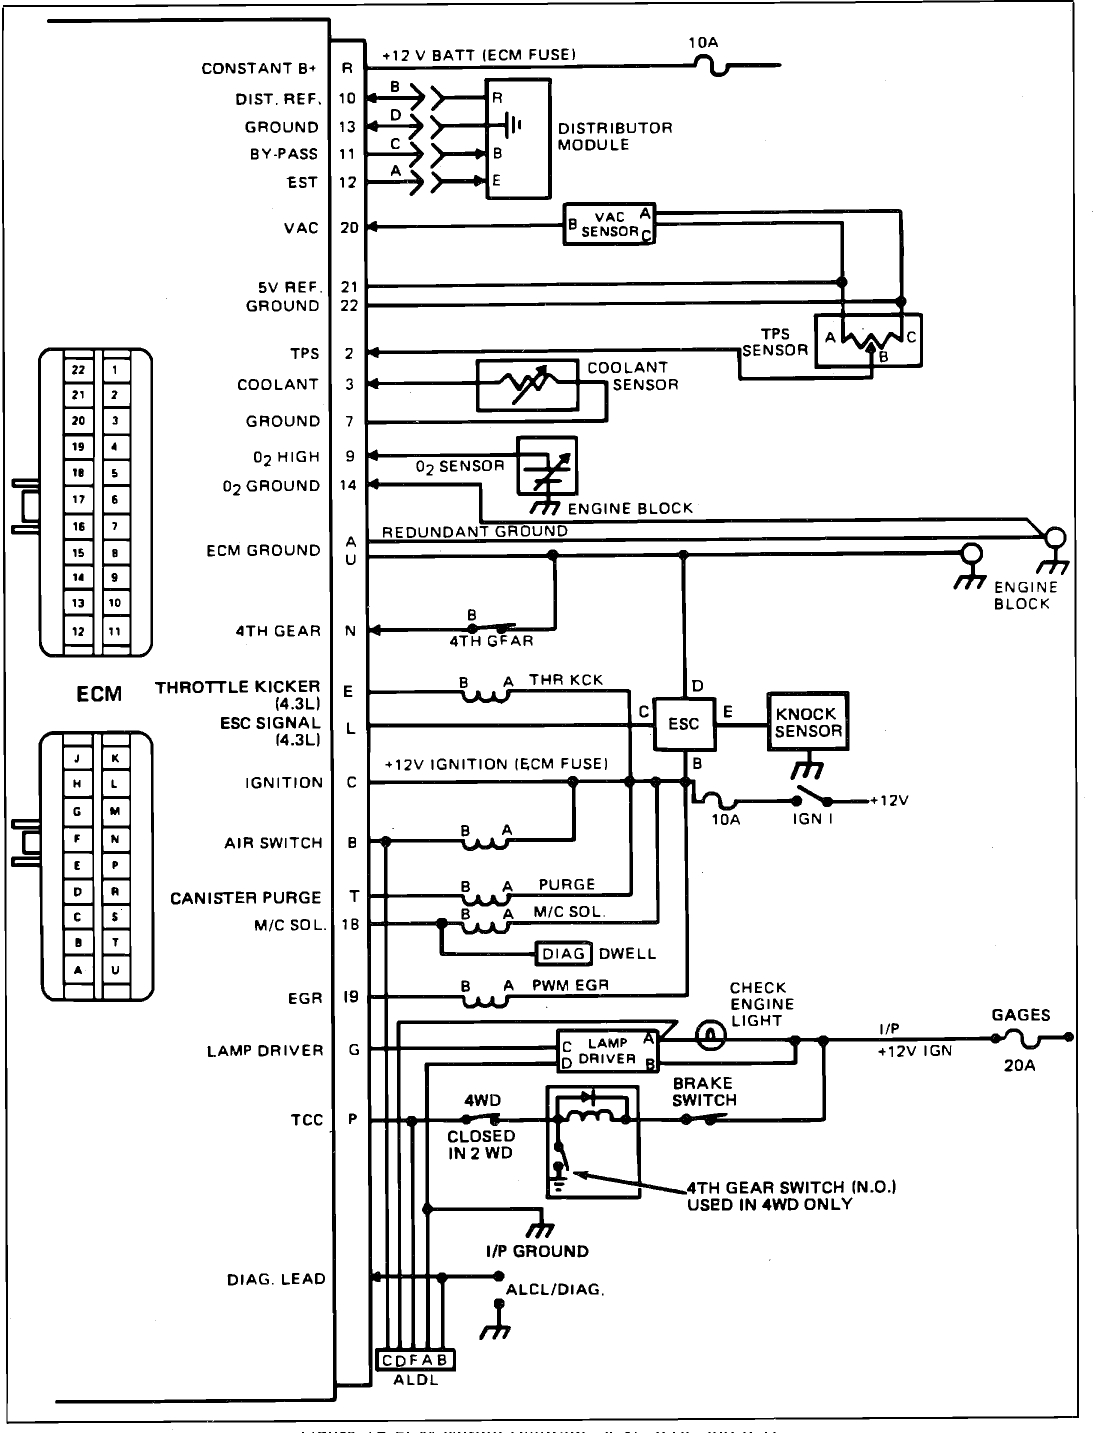 I Need A Fuse Box Diagram With Wiring Colors Chevy 4Wd Wiring Diagram Chevy  Van Wiring Diagram